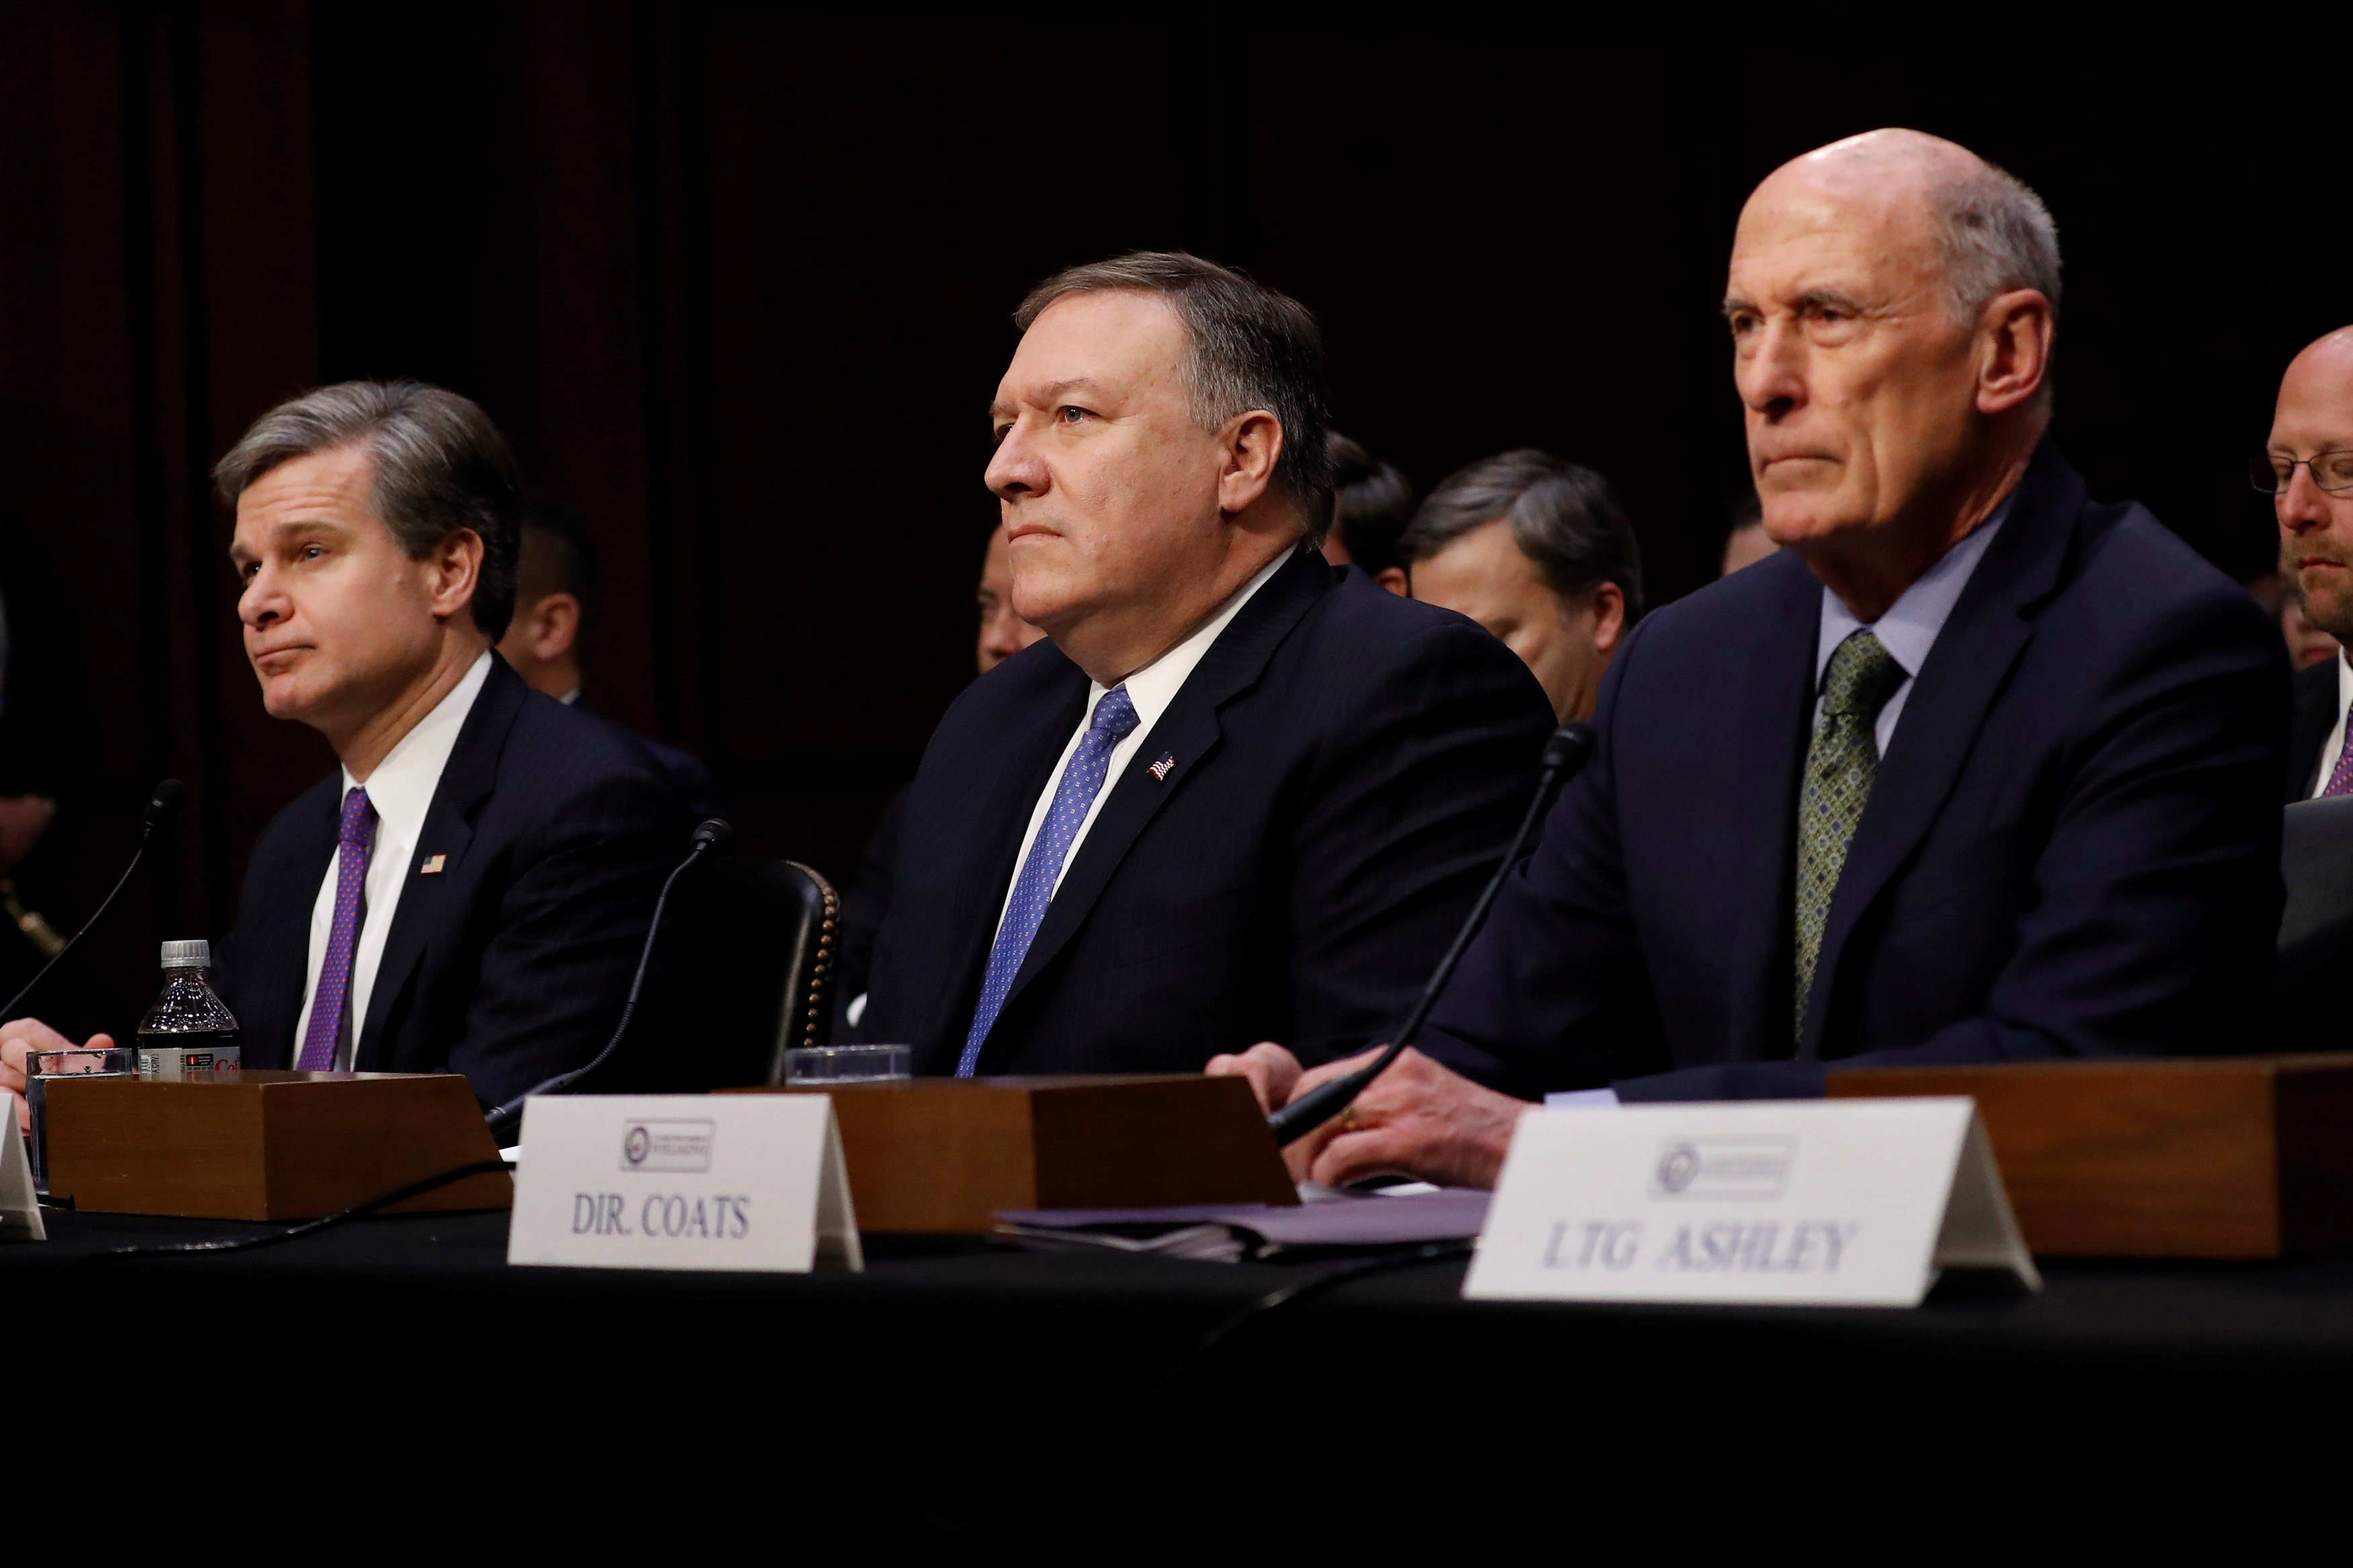 Federal Bureau of Investigation (FBI) Director Christopher Wray, Central Intelligence Agency (CIA) Director Mike Pompeo, and Director of National Intelligence (DNI) Dan Coats wait to testify before the Senate Intelligence Committee on Capitol Hill in Washington, U.S., February 13, 2018. REUTERS/Aaron P. Bernstein